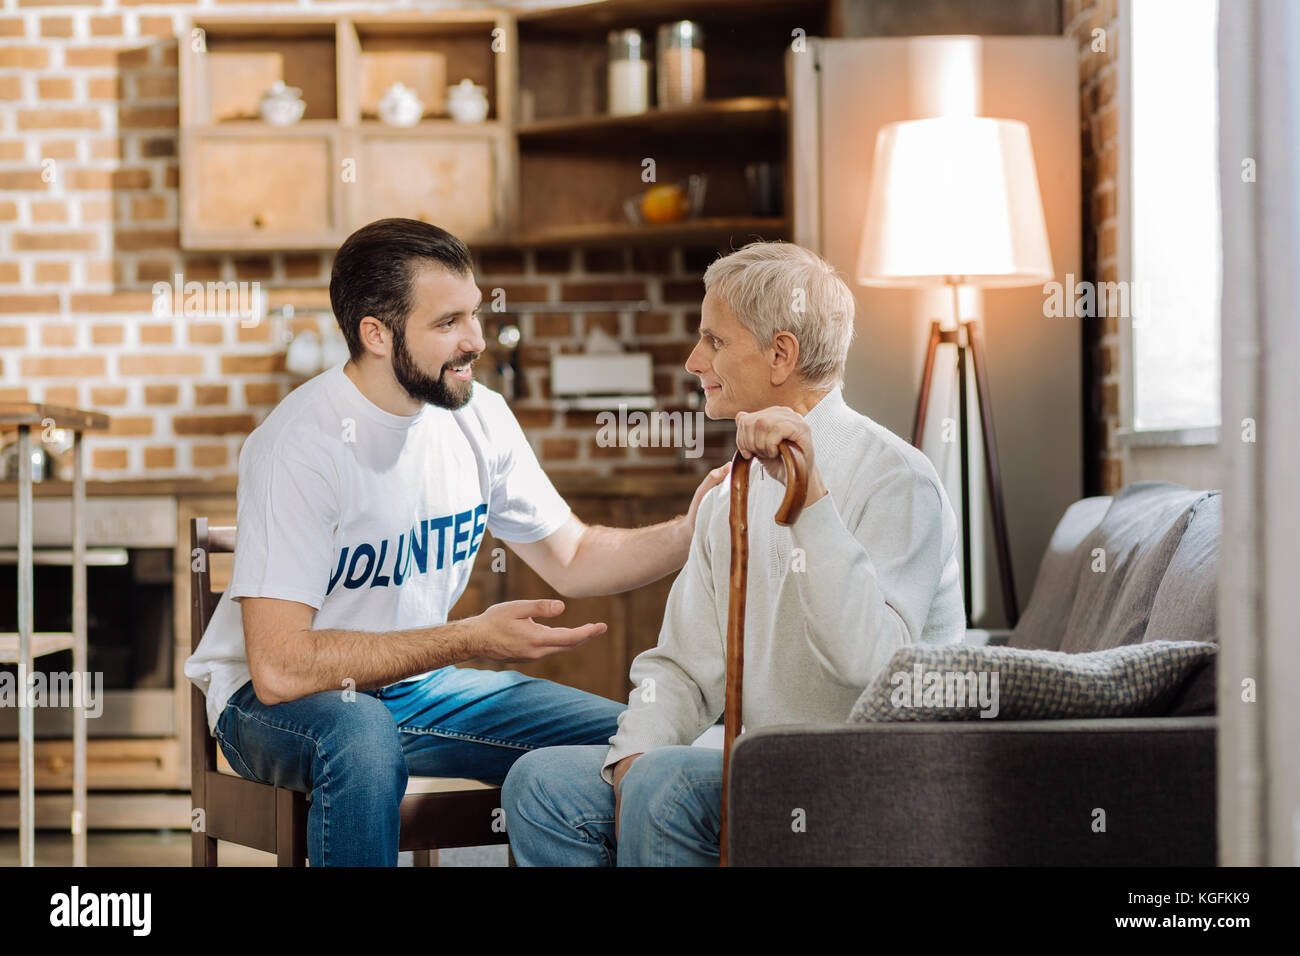 Young attentive volunteer telling the latest new to a senior man - Stock Image